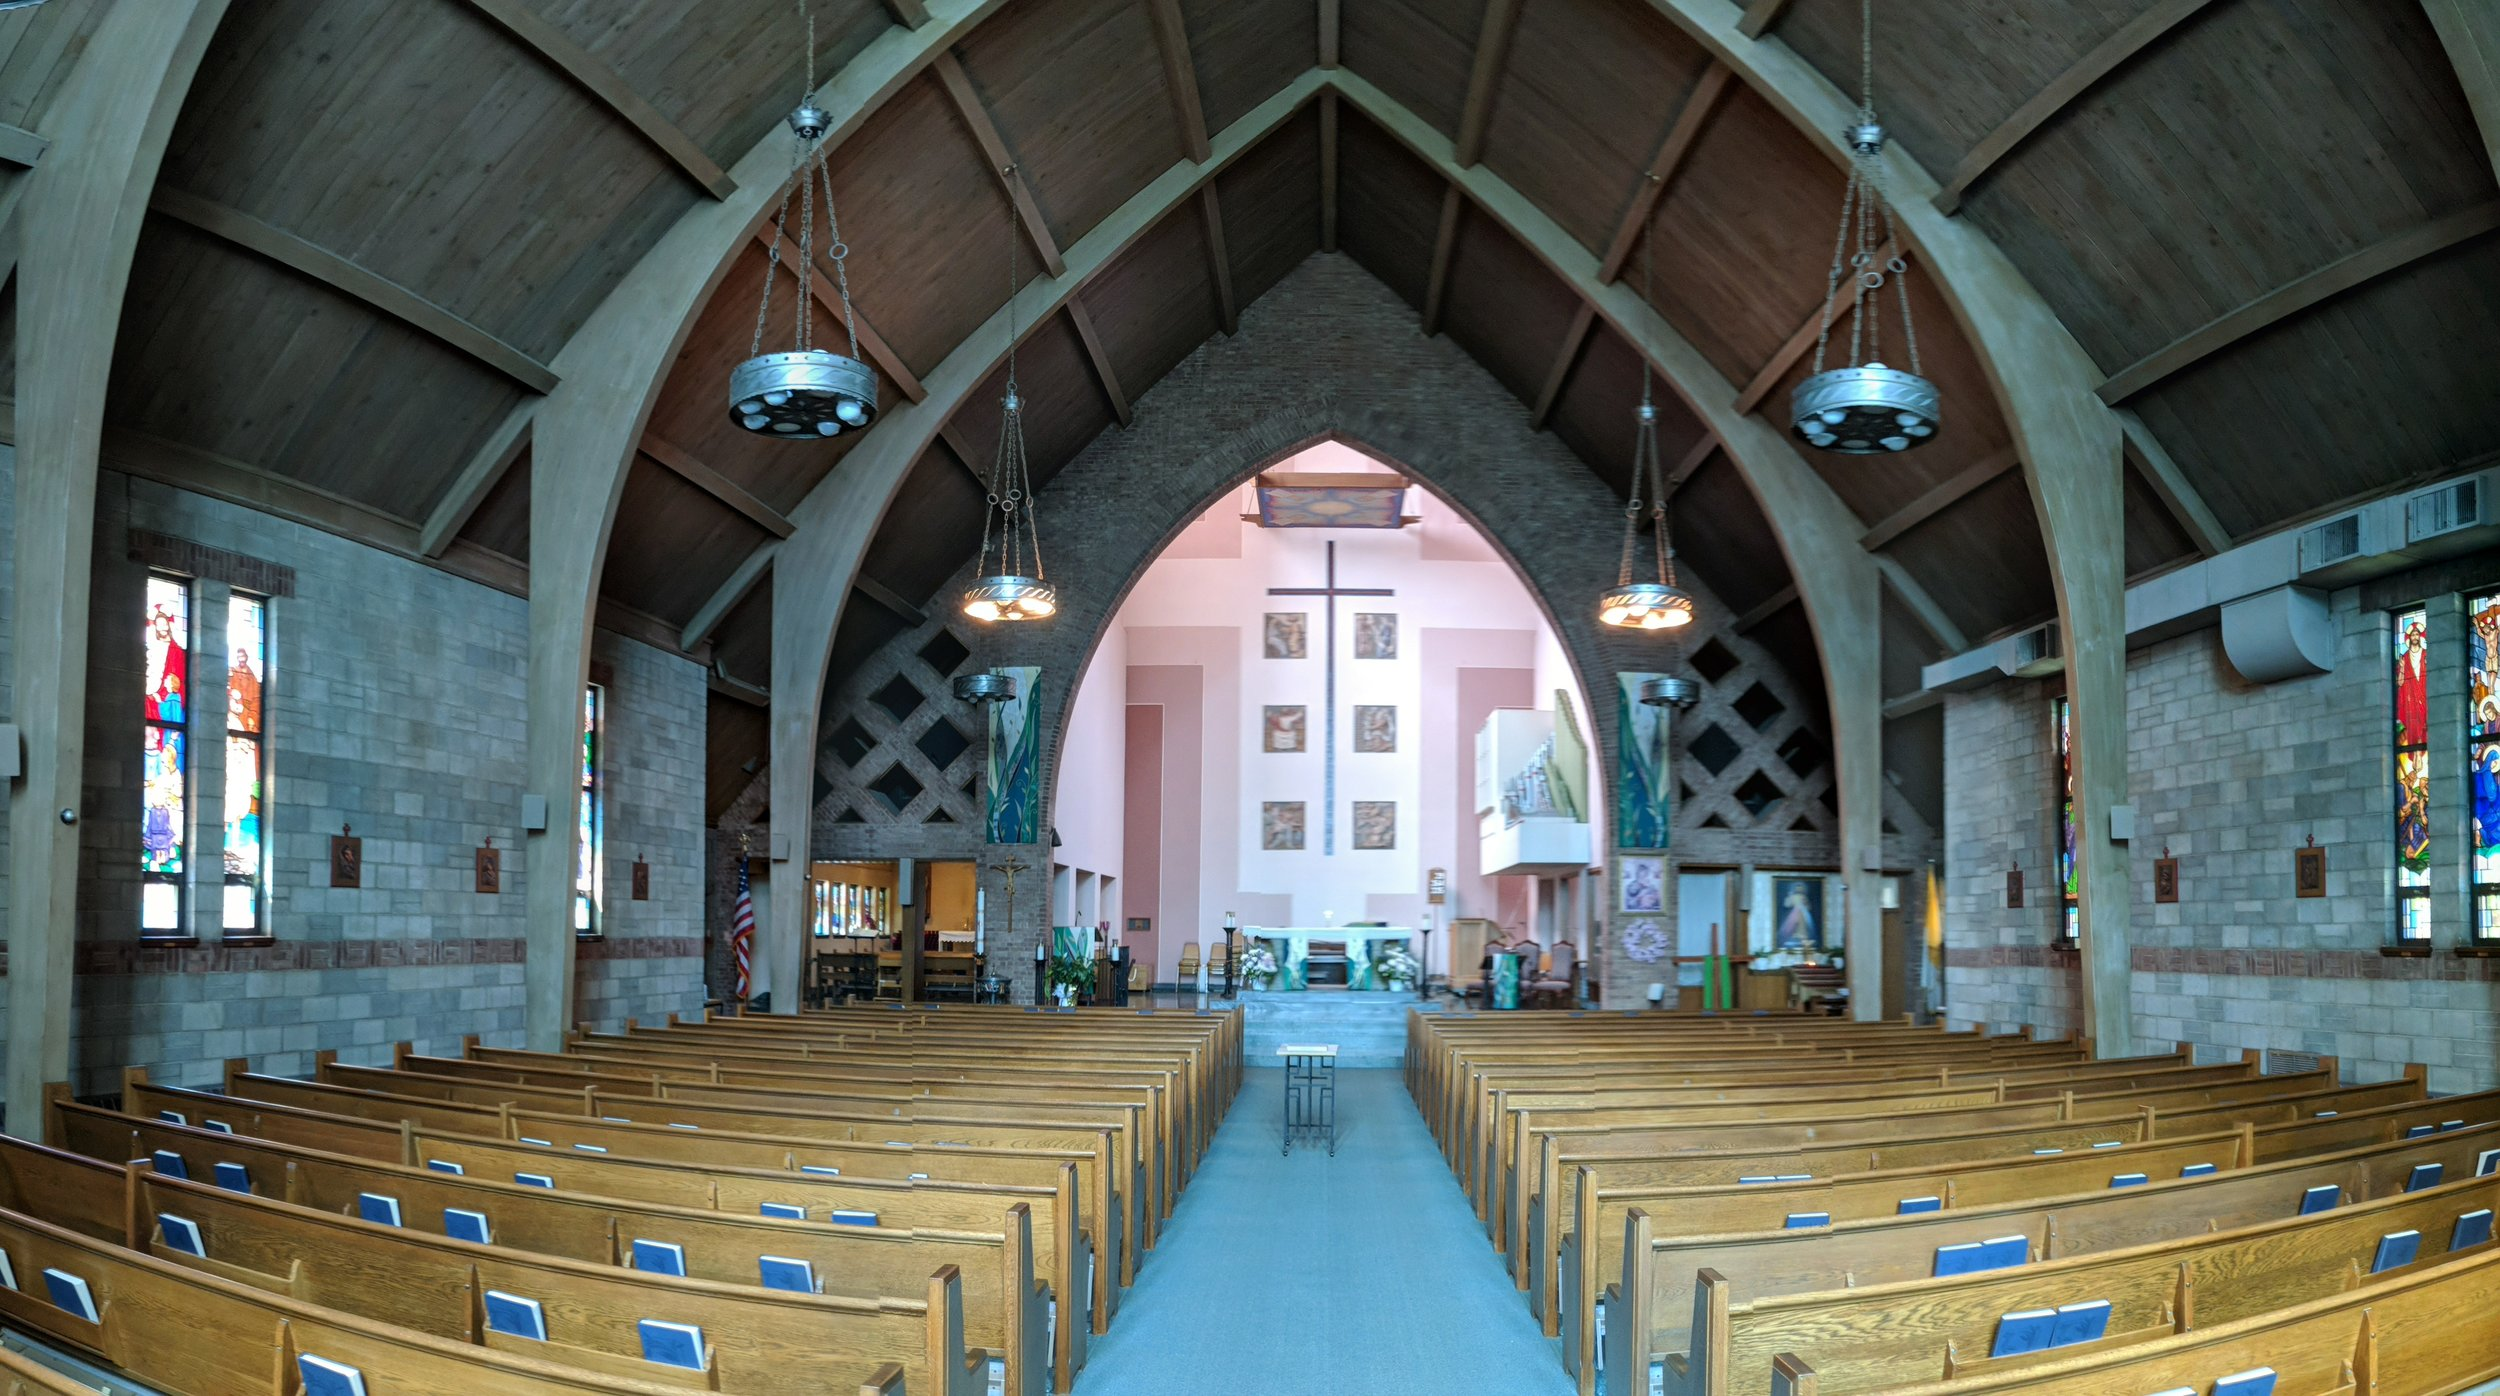 CAMM line array speakers provide coverage in the front Nave, while CAMM DT-200 speakers provide coverage in the middle and rear Nave. Two CAMM subwoofers are mounted on the front side of the Sanctuary (hidden) for low frequency reproduction and reinforcement.